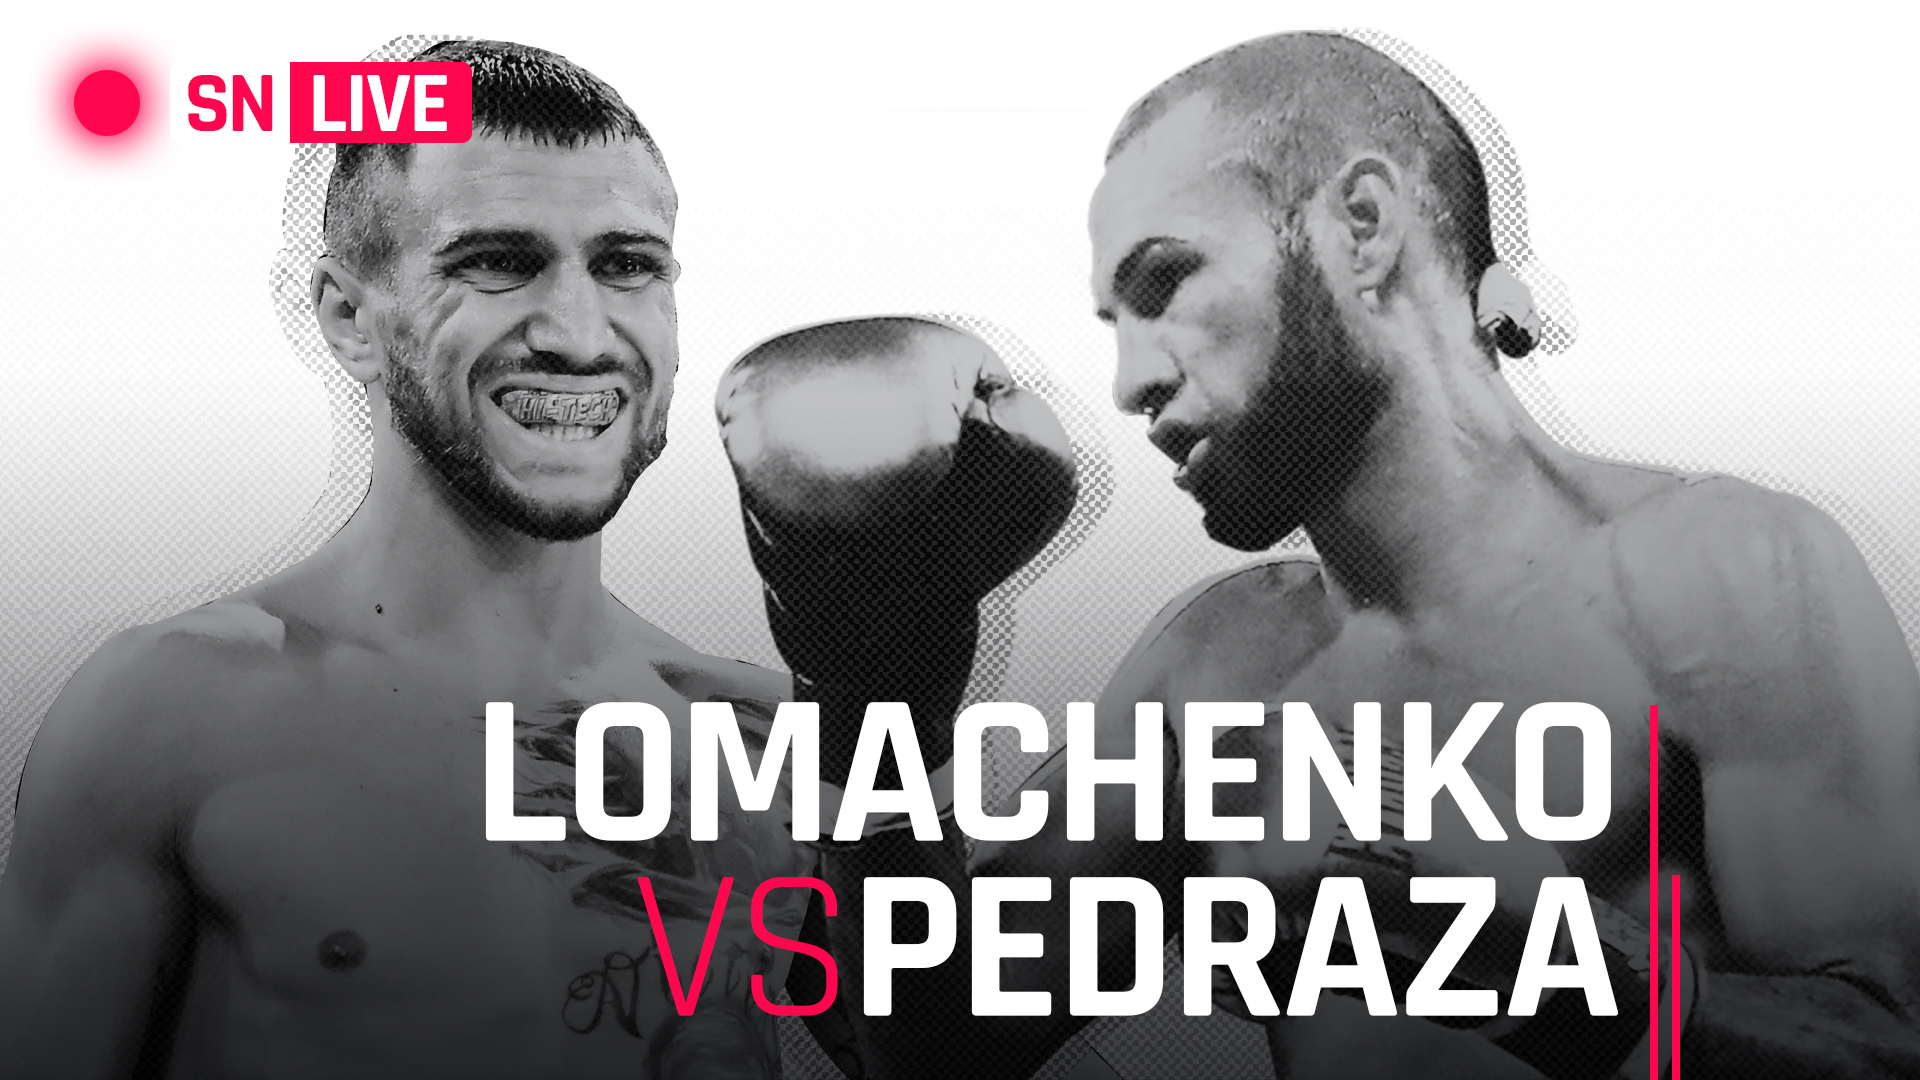 Lomachenko unifies title with victory